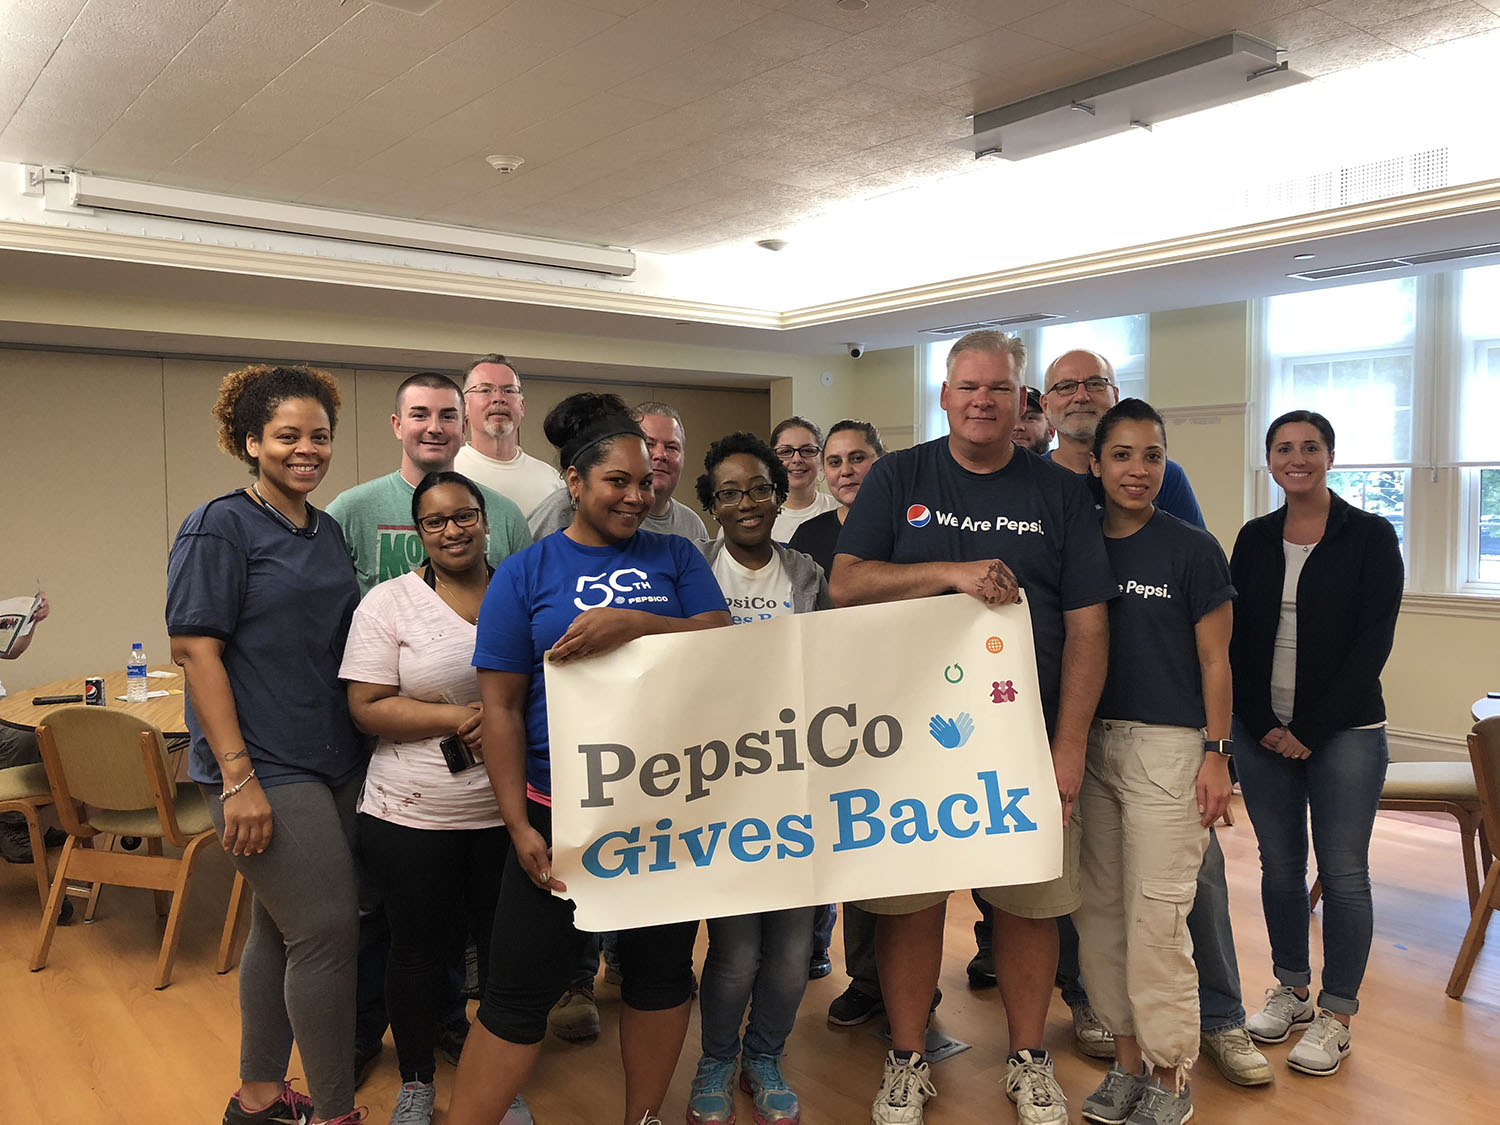 photo of Pepsico volunteers holding sign that says PepsiCo Gives Back